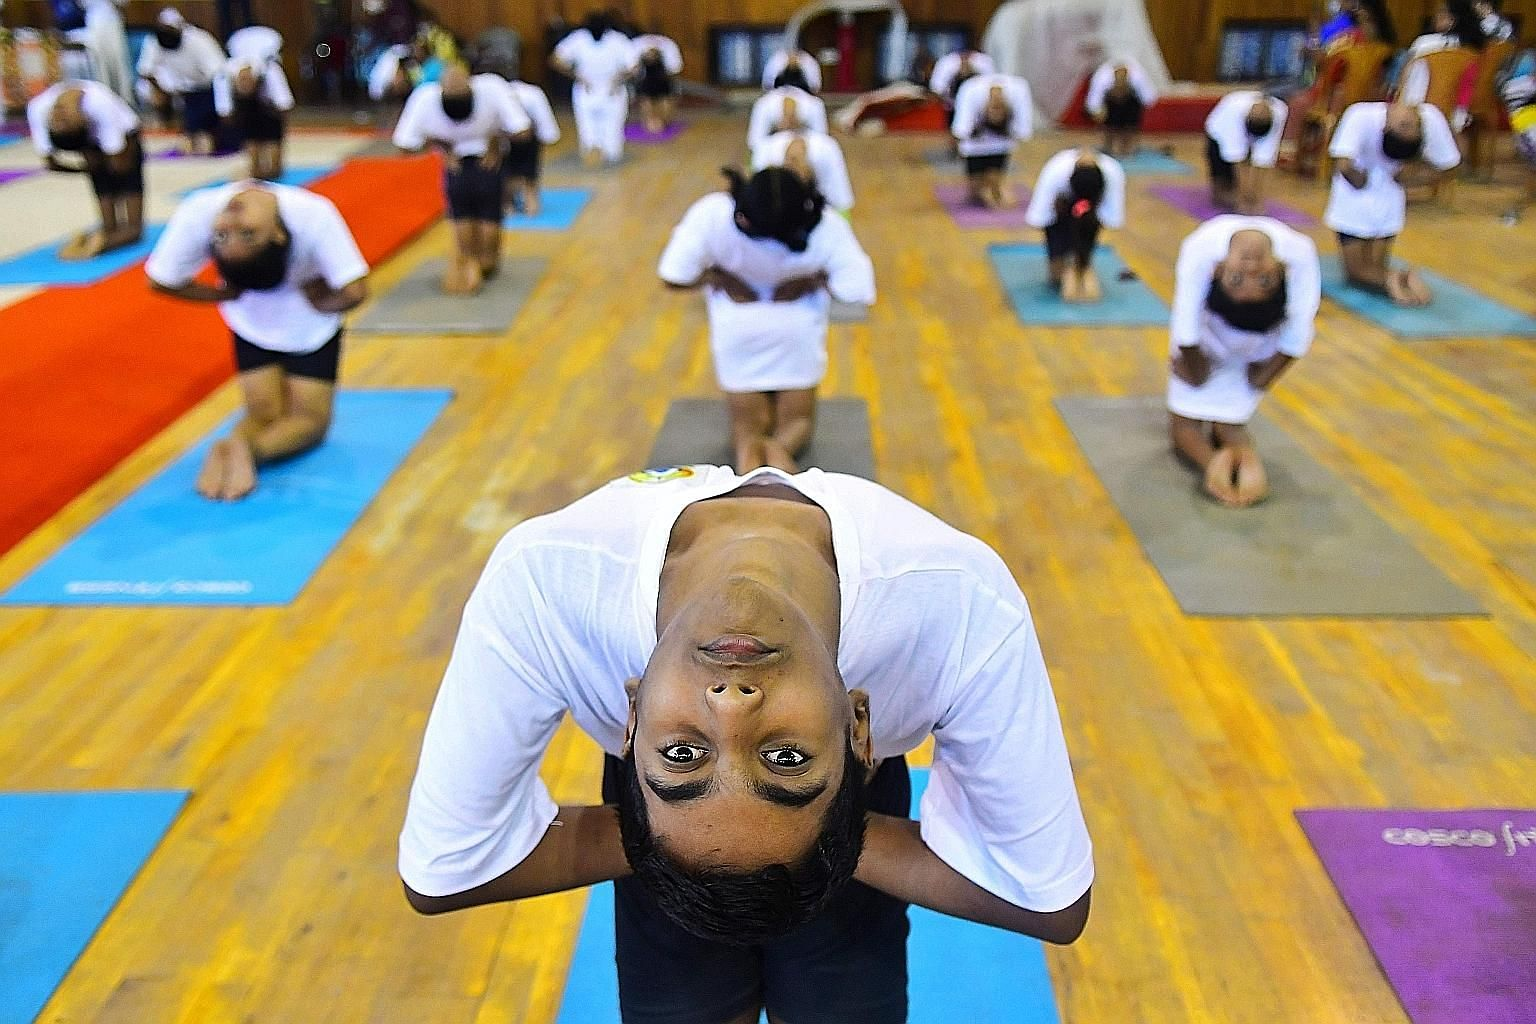 Students doing stretching exercises on International Yoga Day in Agartala, India, last month. PHOTO: AGENCE FRANCE-PRESSE